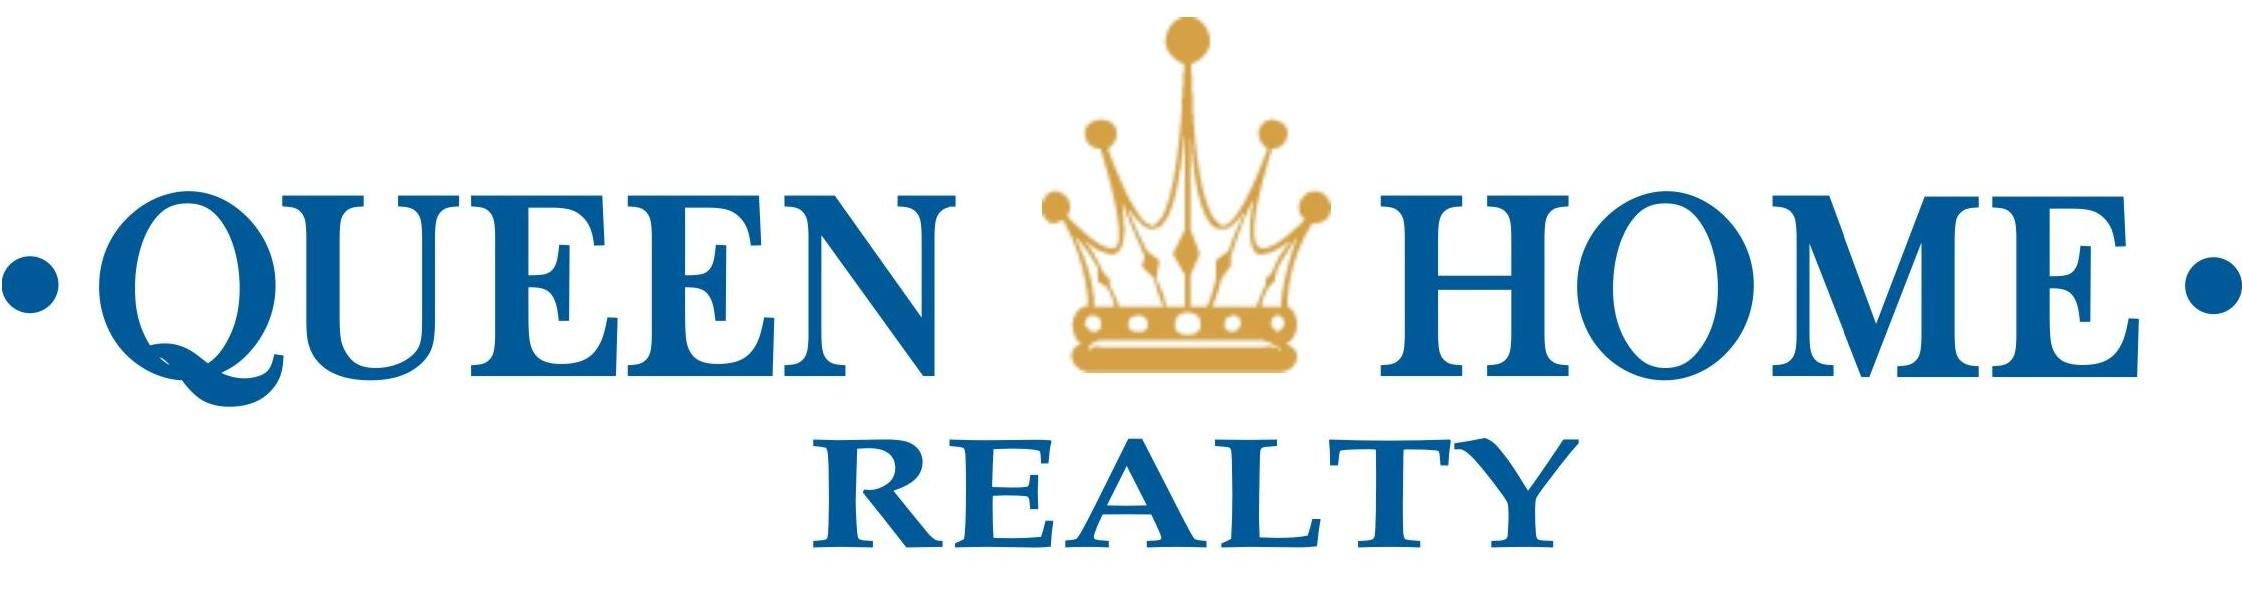 QUEEN HOME REALTY